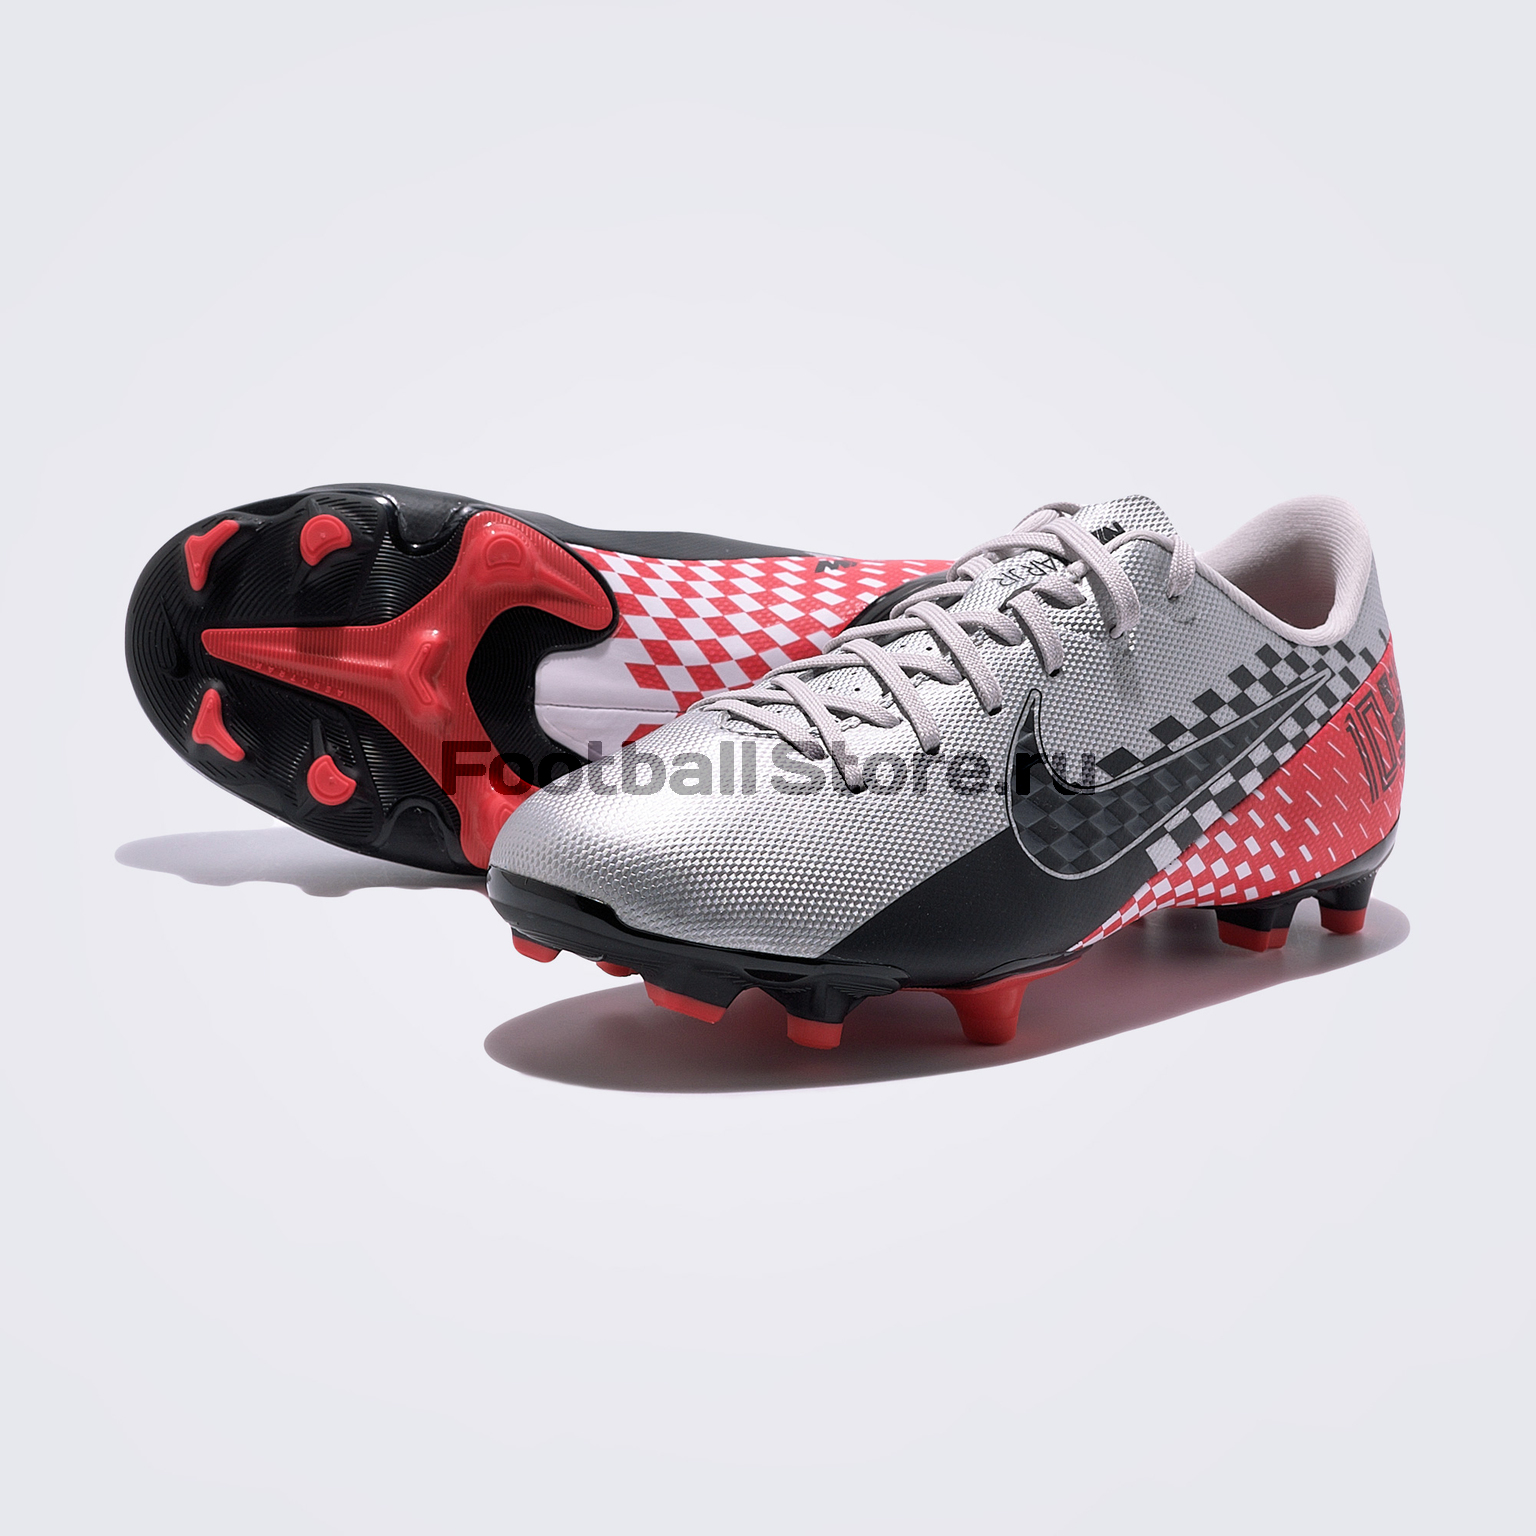 Бутсы детские Nike Vapor 13 Academy Neymar FG/MG AT8125-006